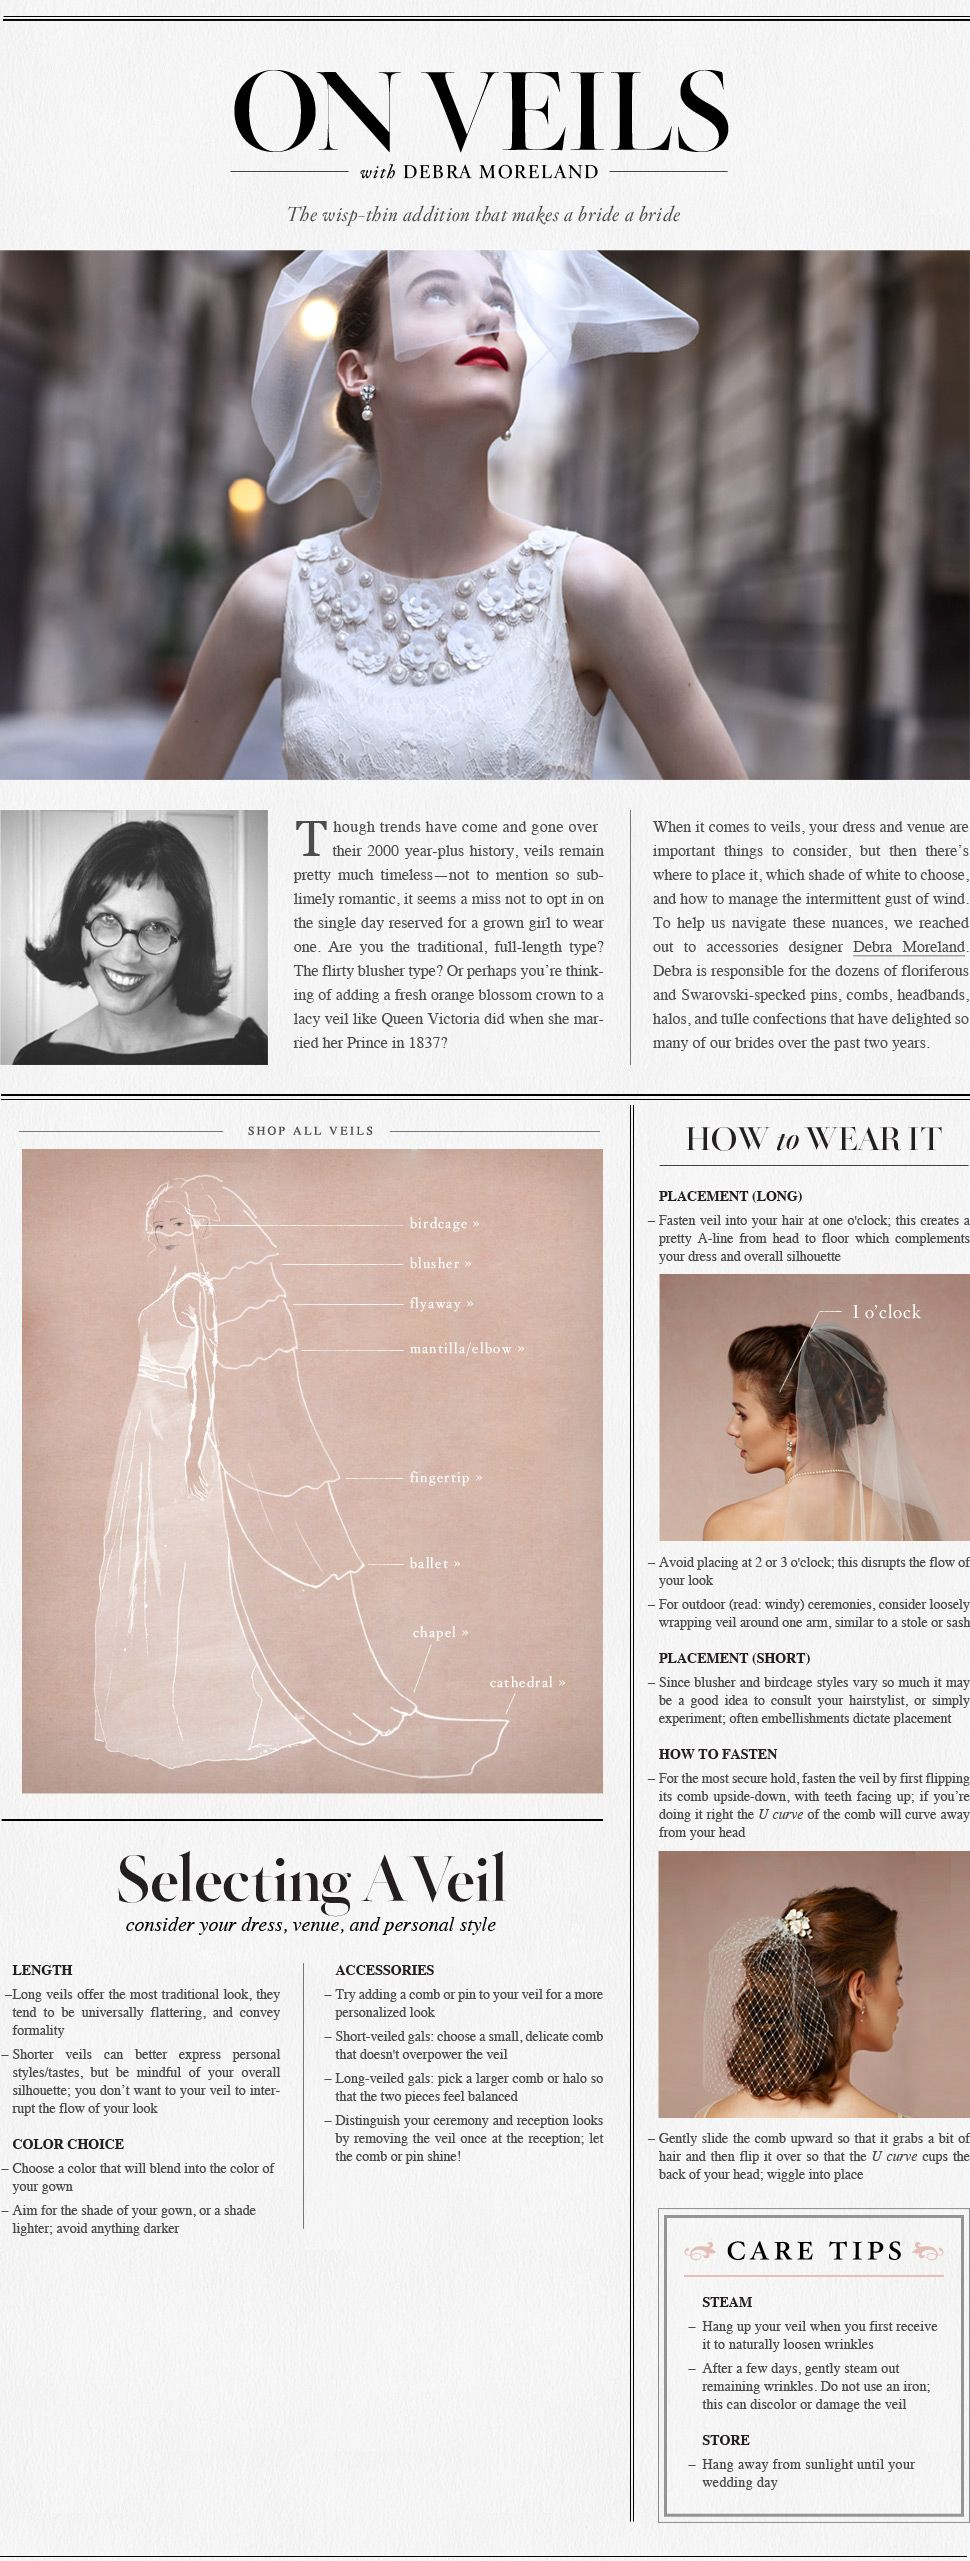 Pin by chelsey maxwell on big top pinterest veil modern and